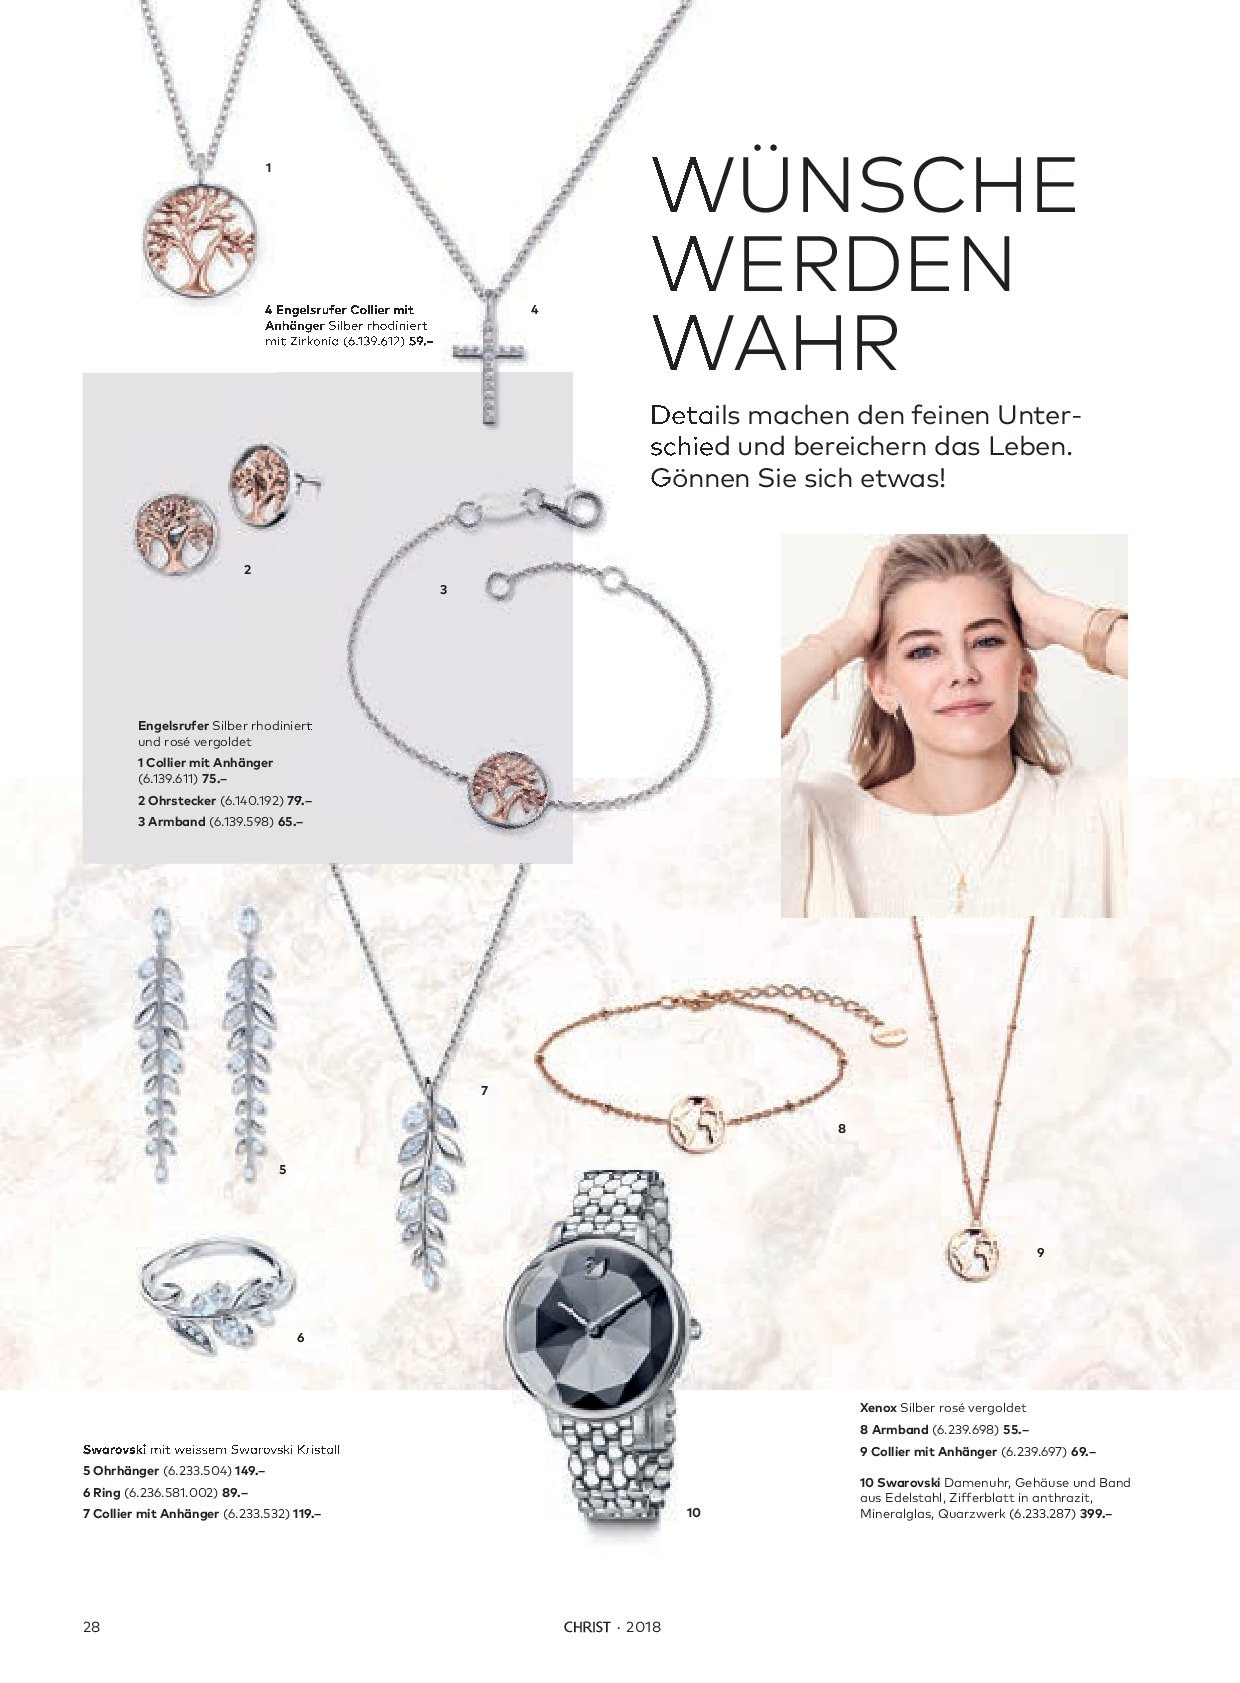 Prospekte Coop - 28.8.2018 - 28.2.2019 - Produkte in Aktion - anhänger, armband, band, ring, rosé. Seite 28.